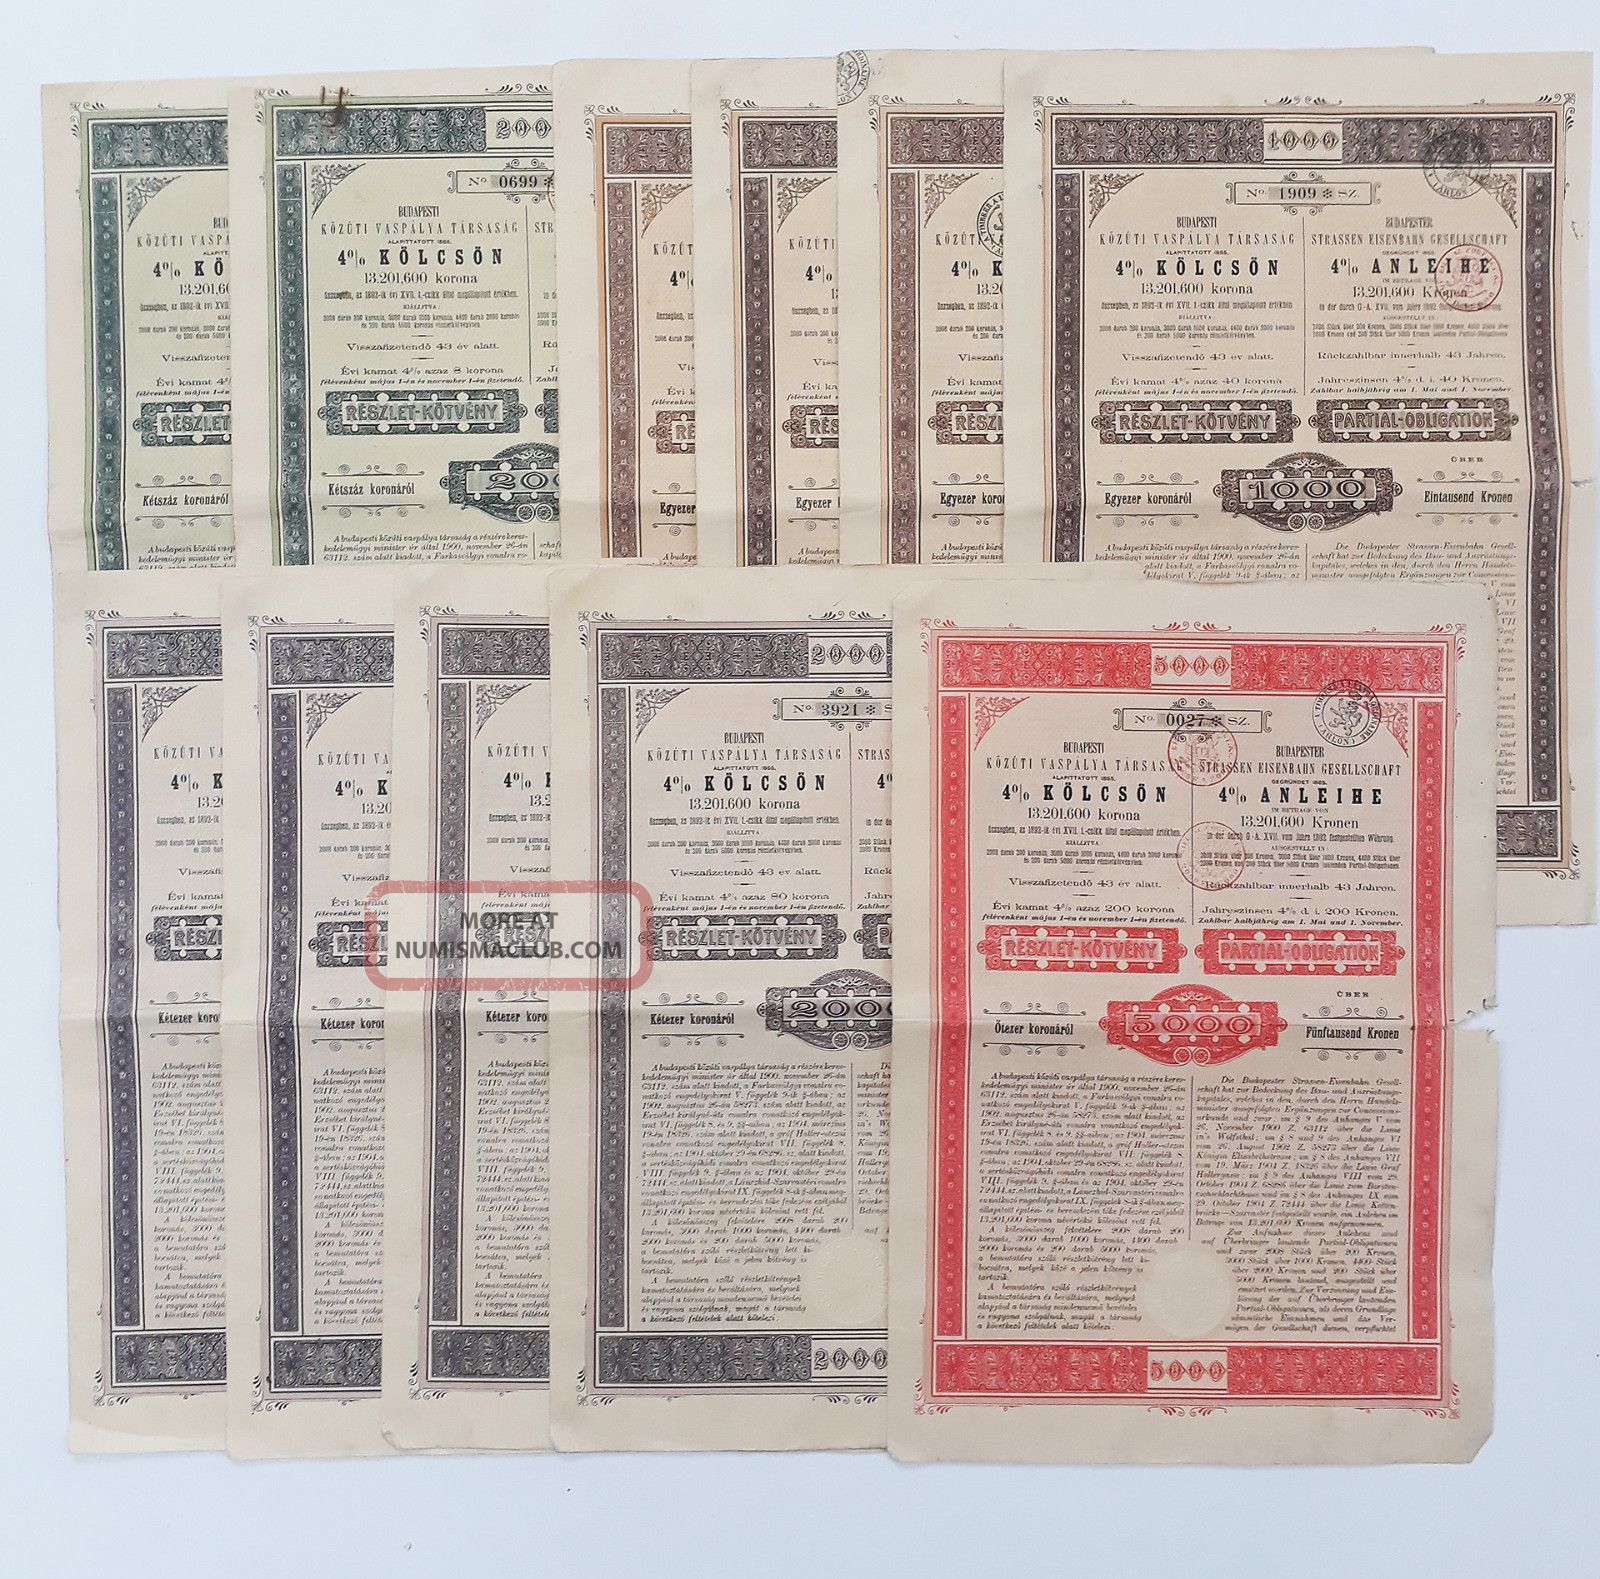 Hungary 1905 - Budapester Strassen Eisenbarn Gesellschaft 4 Obligation (x11) Stocks & Bonds, Scripophily photo